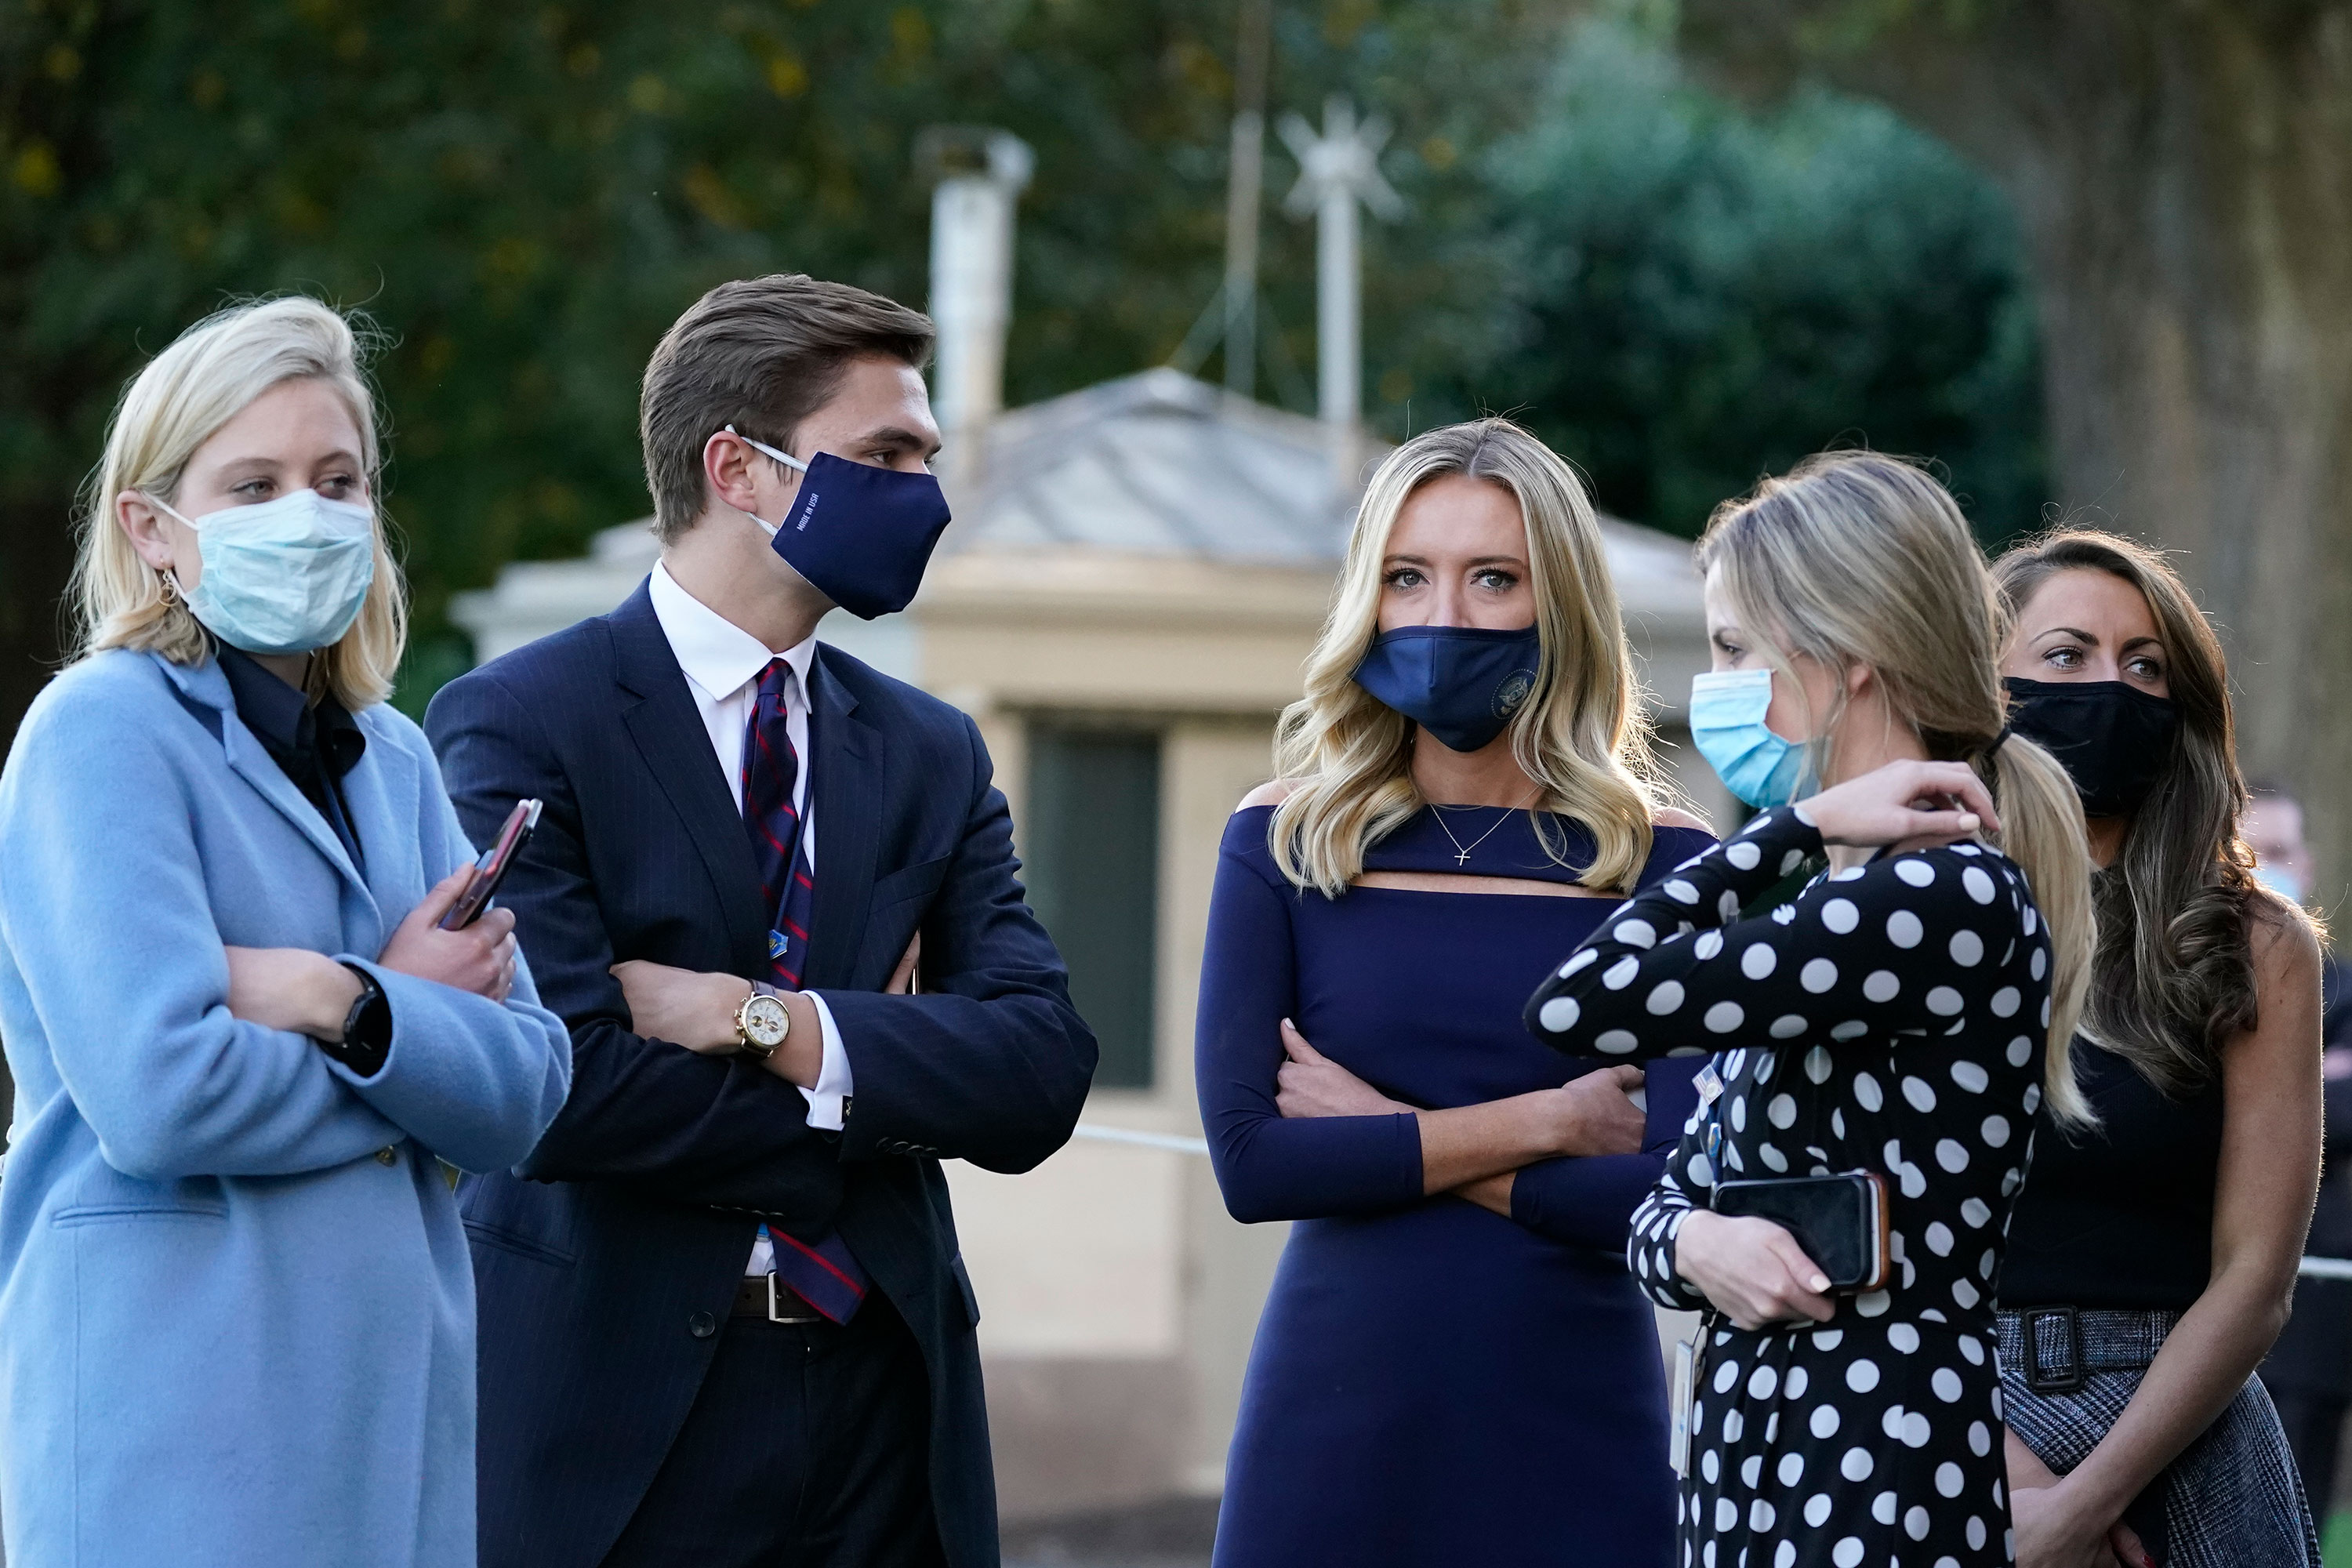 White House press secretary Kayleigh McEnany, third from left, waits with others as President Donald Trump prepares to leave the White House to go to Walter Reed National Military Medical Center on October 2 in Washington, DC.